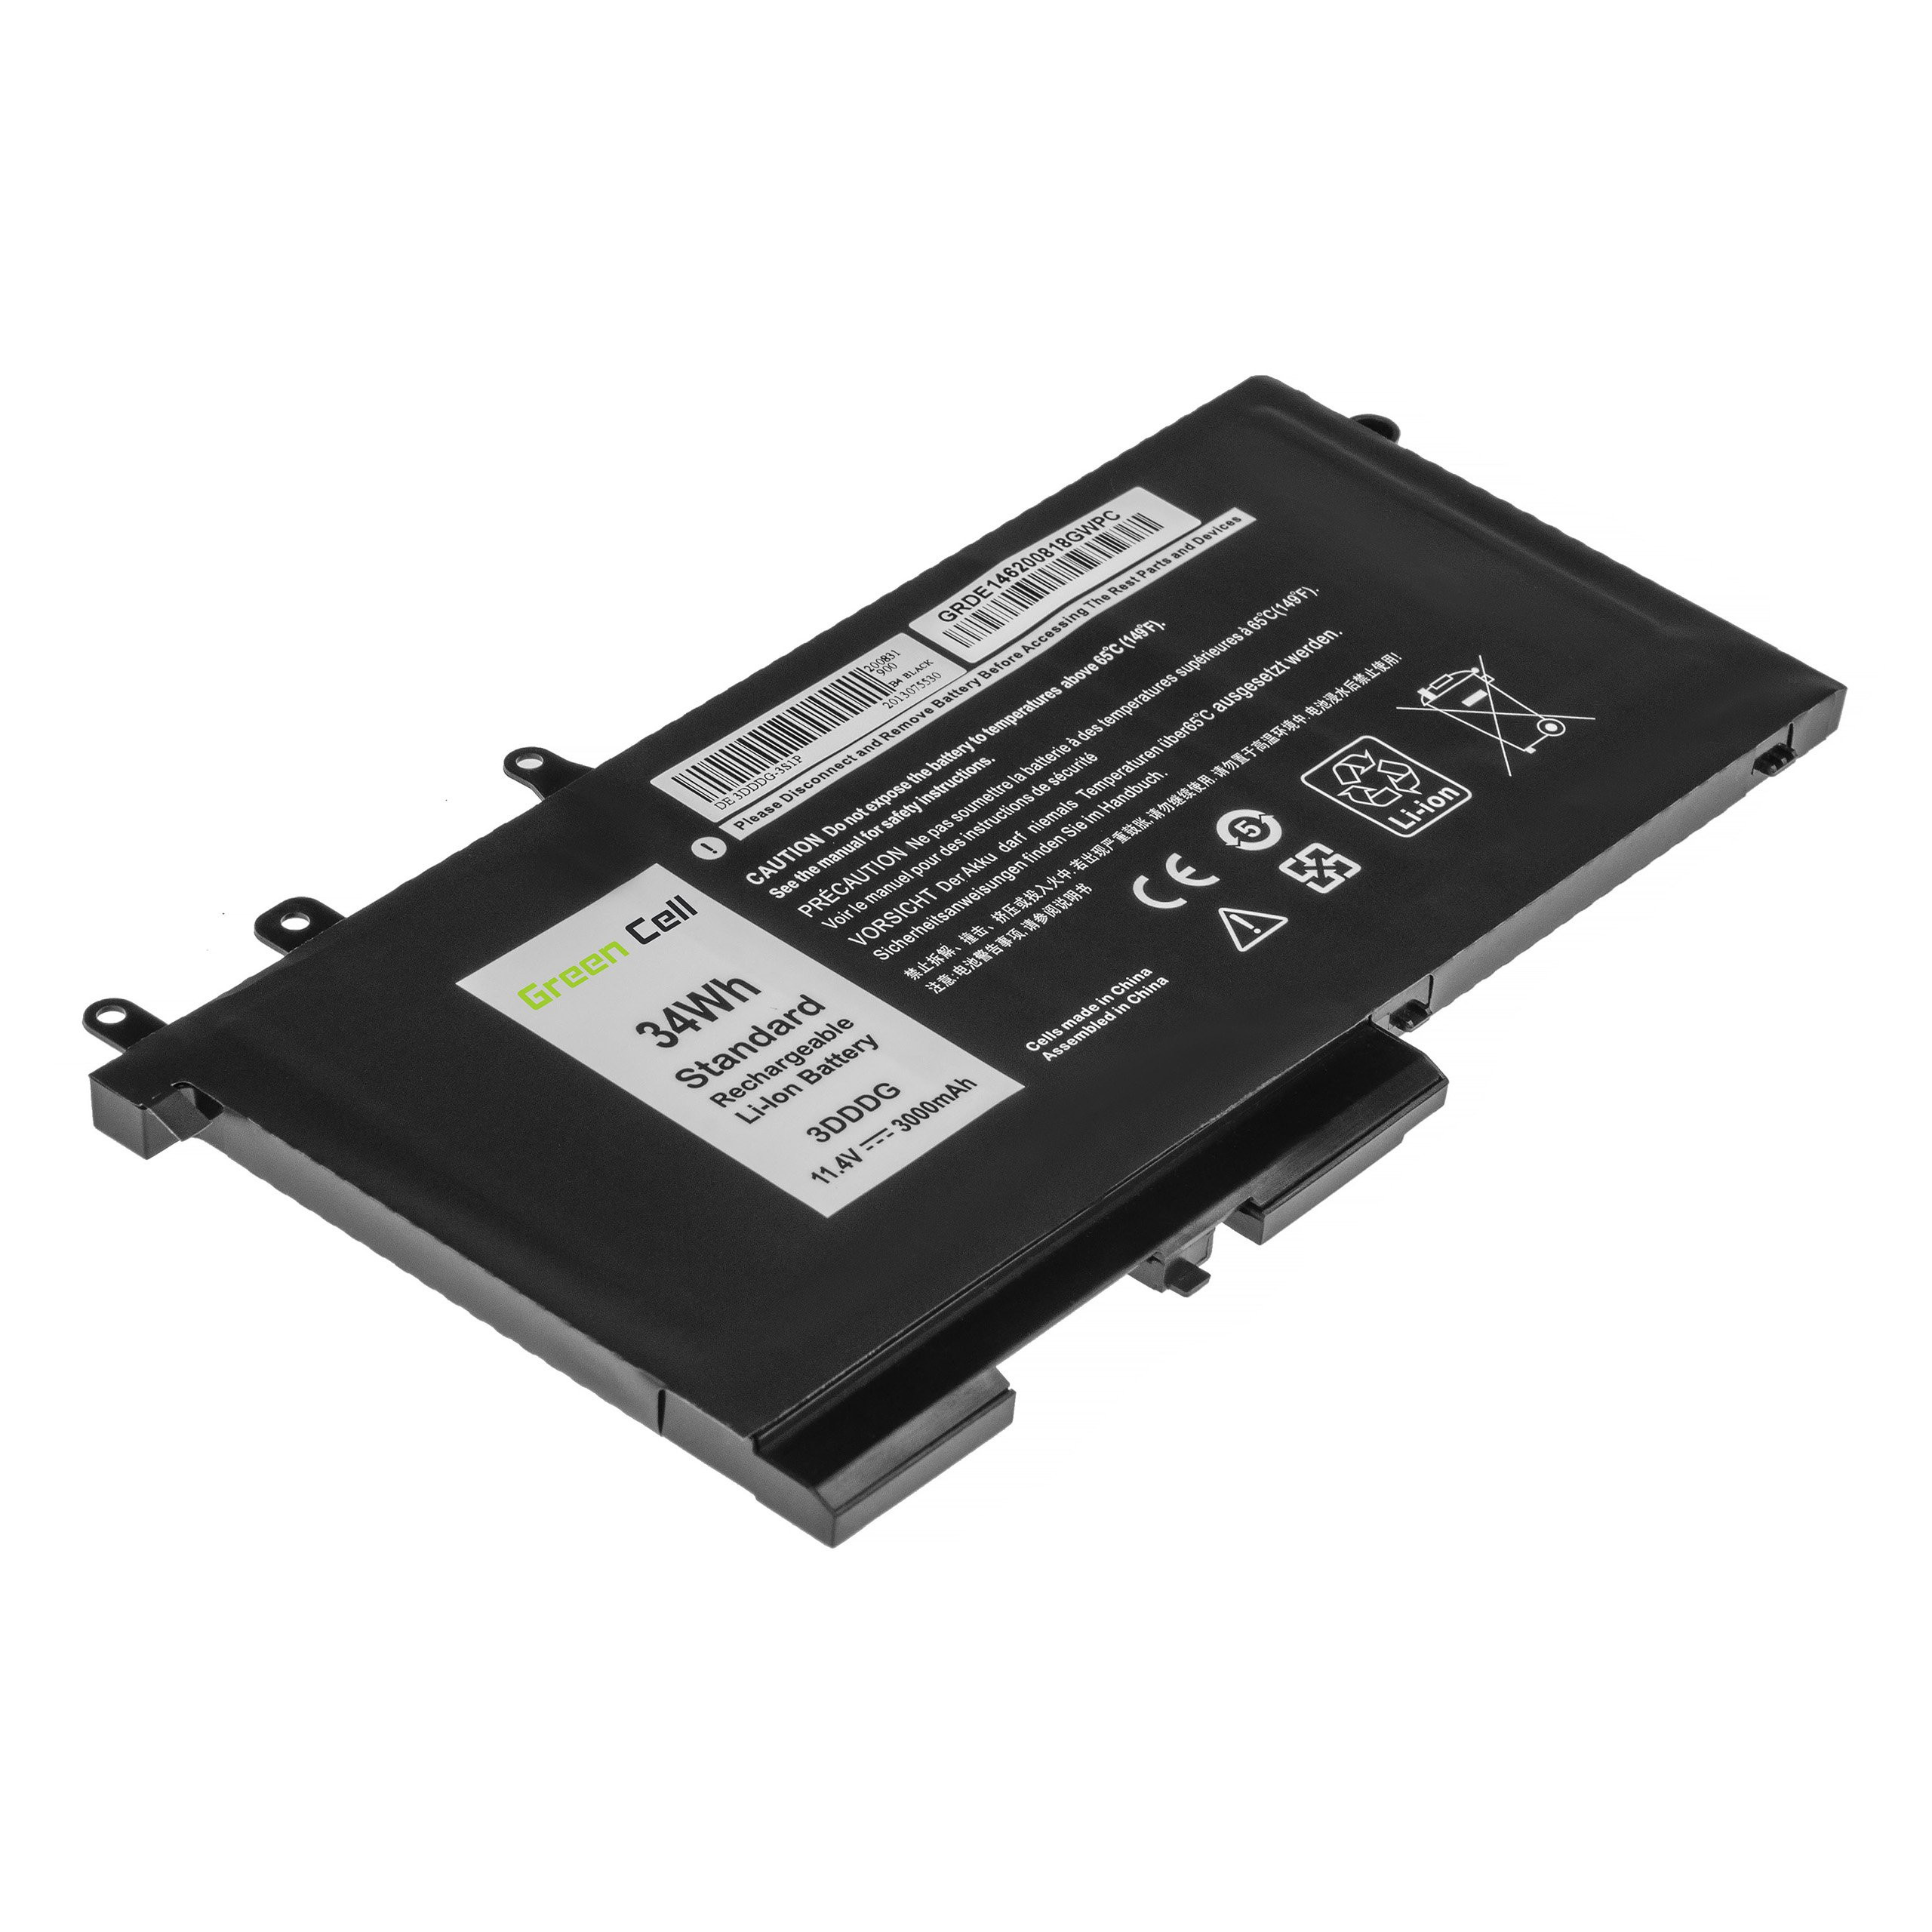 Green Cell Baterie 3DDDG 93FTF pro Dell Latitude 5280 5290 5480 5490 5495 5580 5590